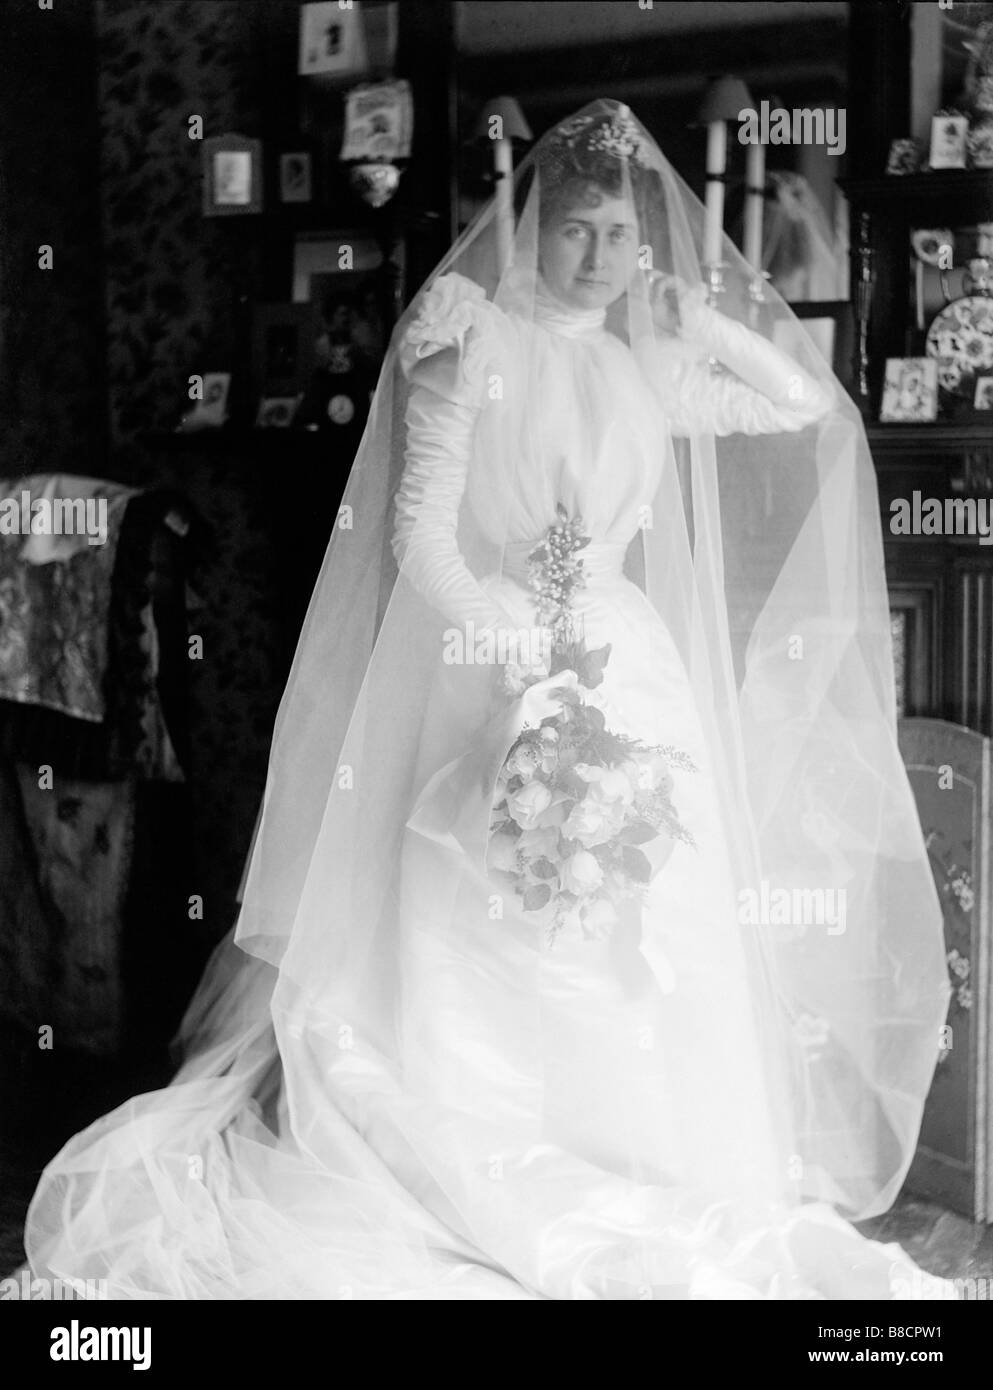 Wedding Dress Victorian Stock Photos & Wedding Dress Victorian Stock ...